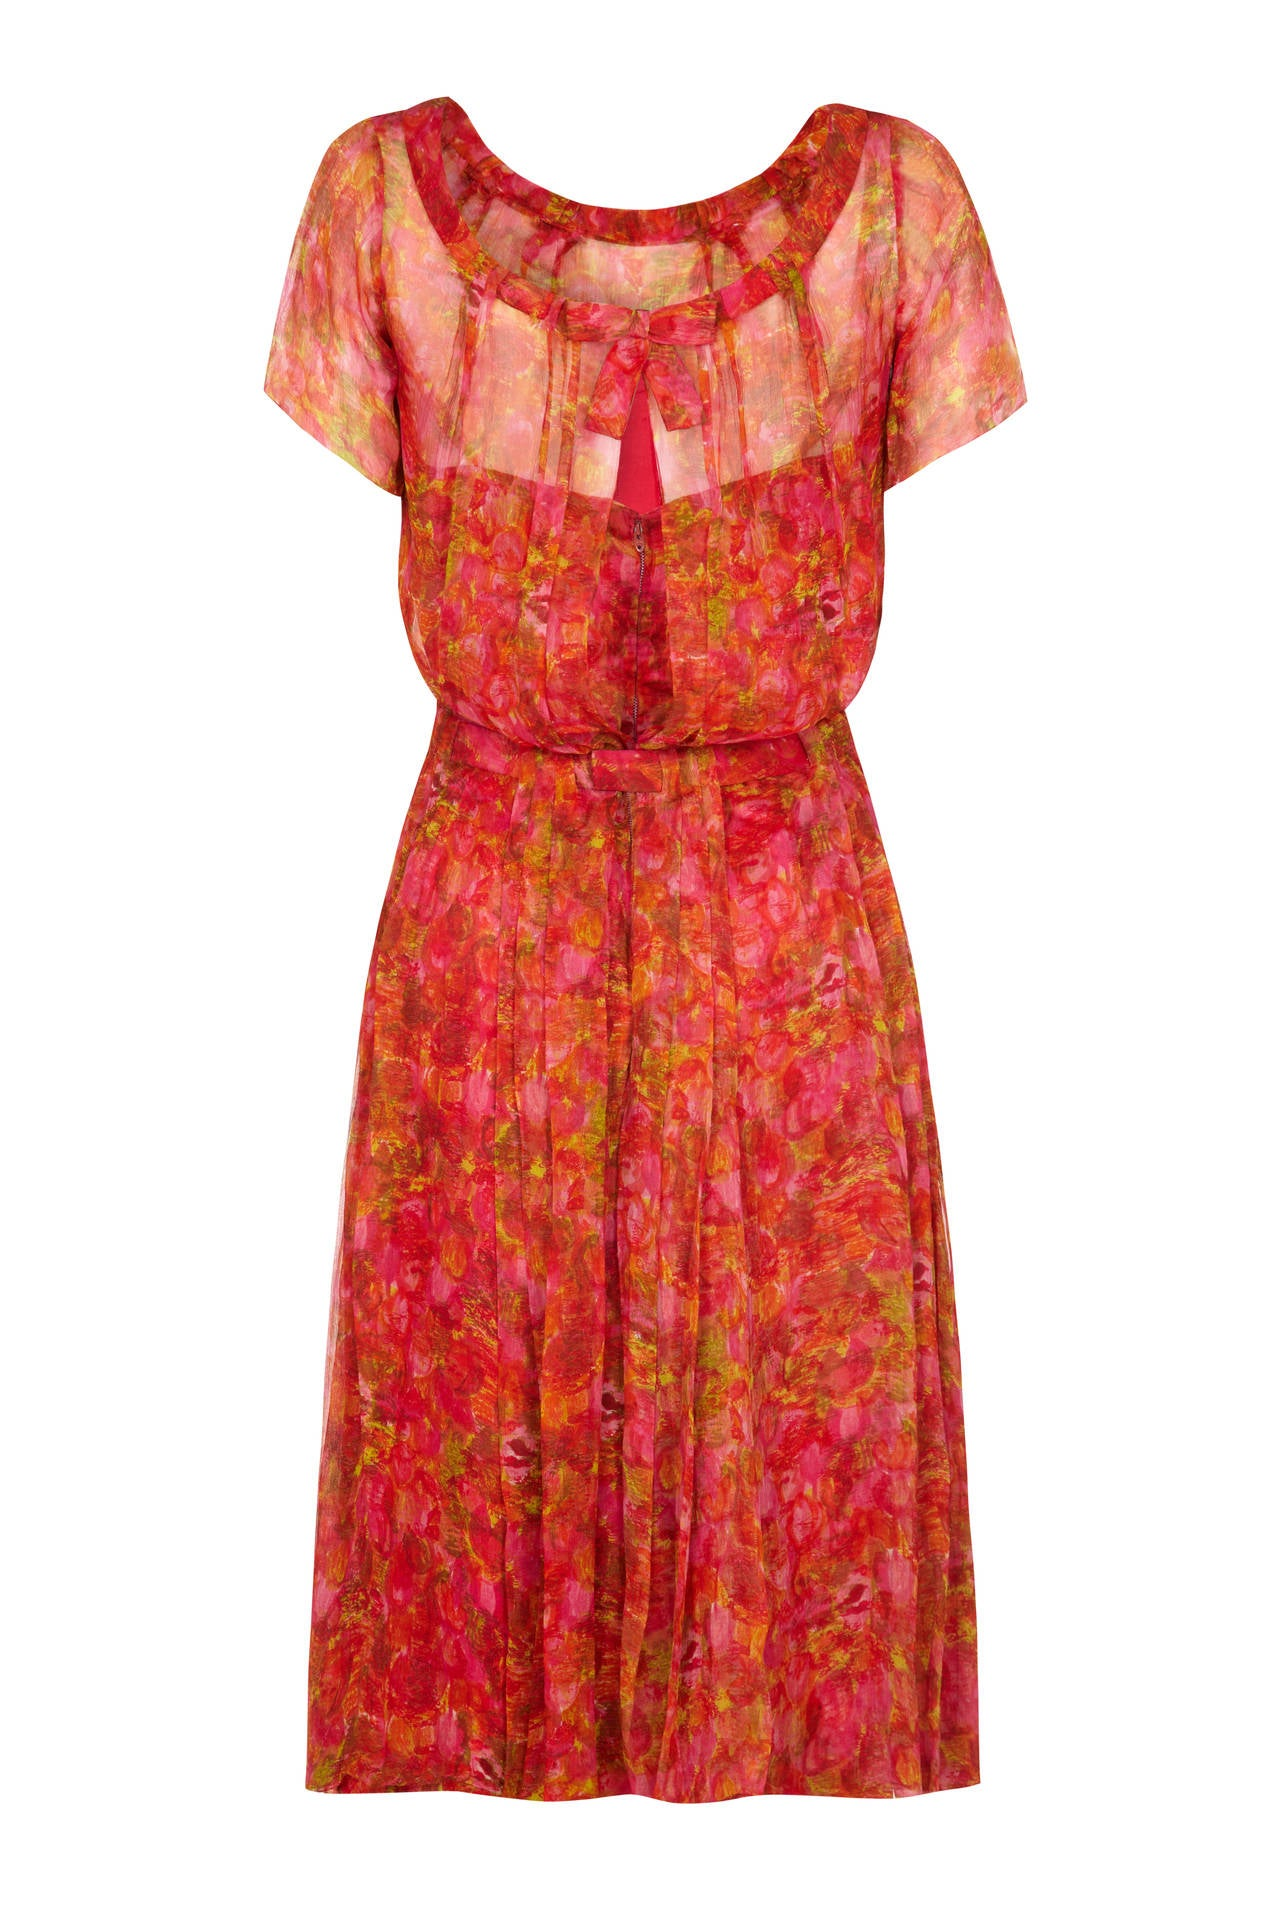 1950s lachasse couture printed chiffon dress at 1stdibs for La couture clothing